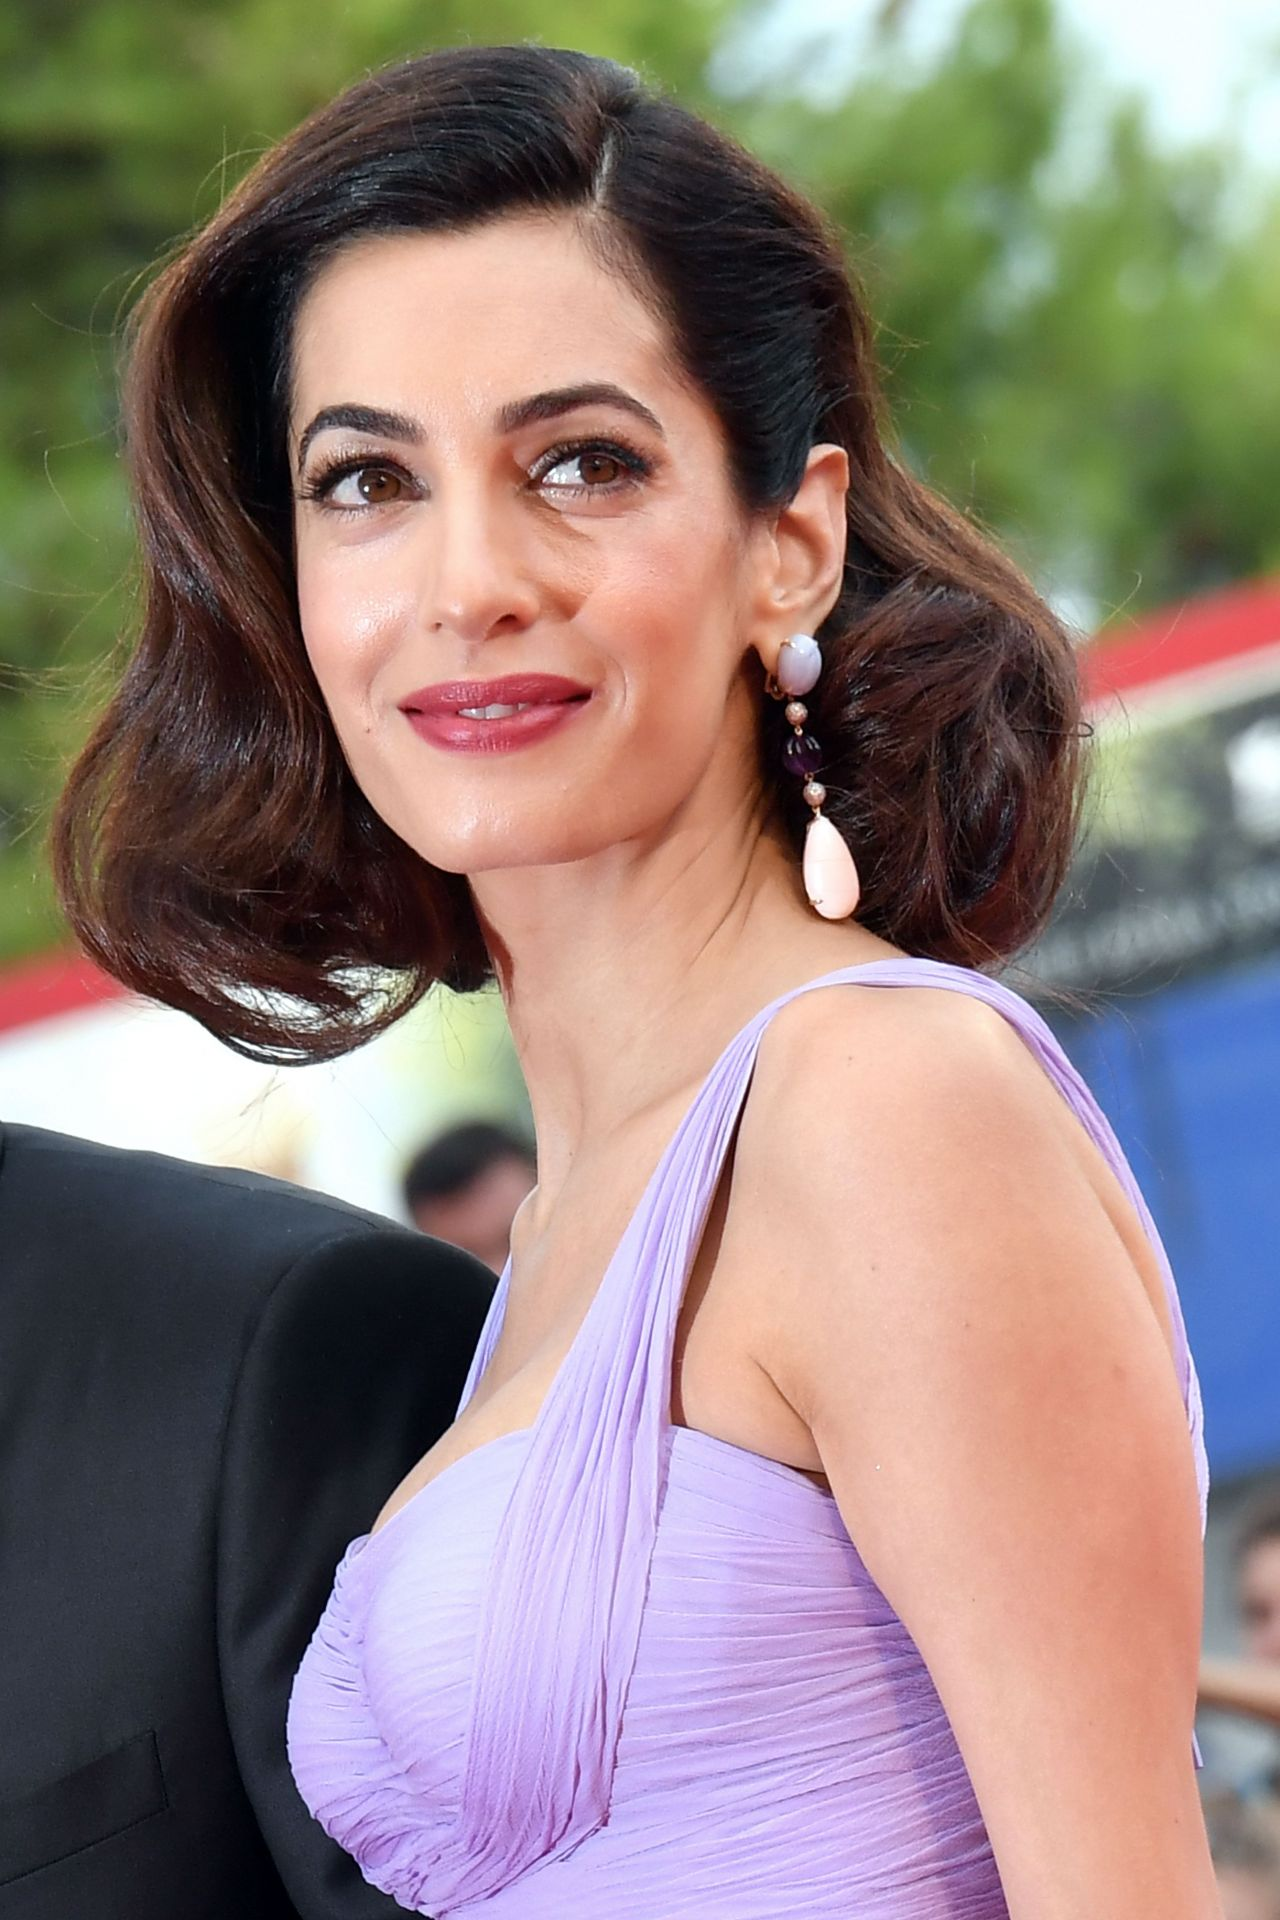 Amal Clooney And George Clooney Suburbicon Premiere In